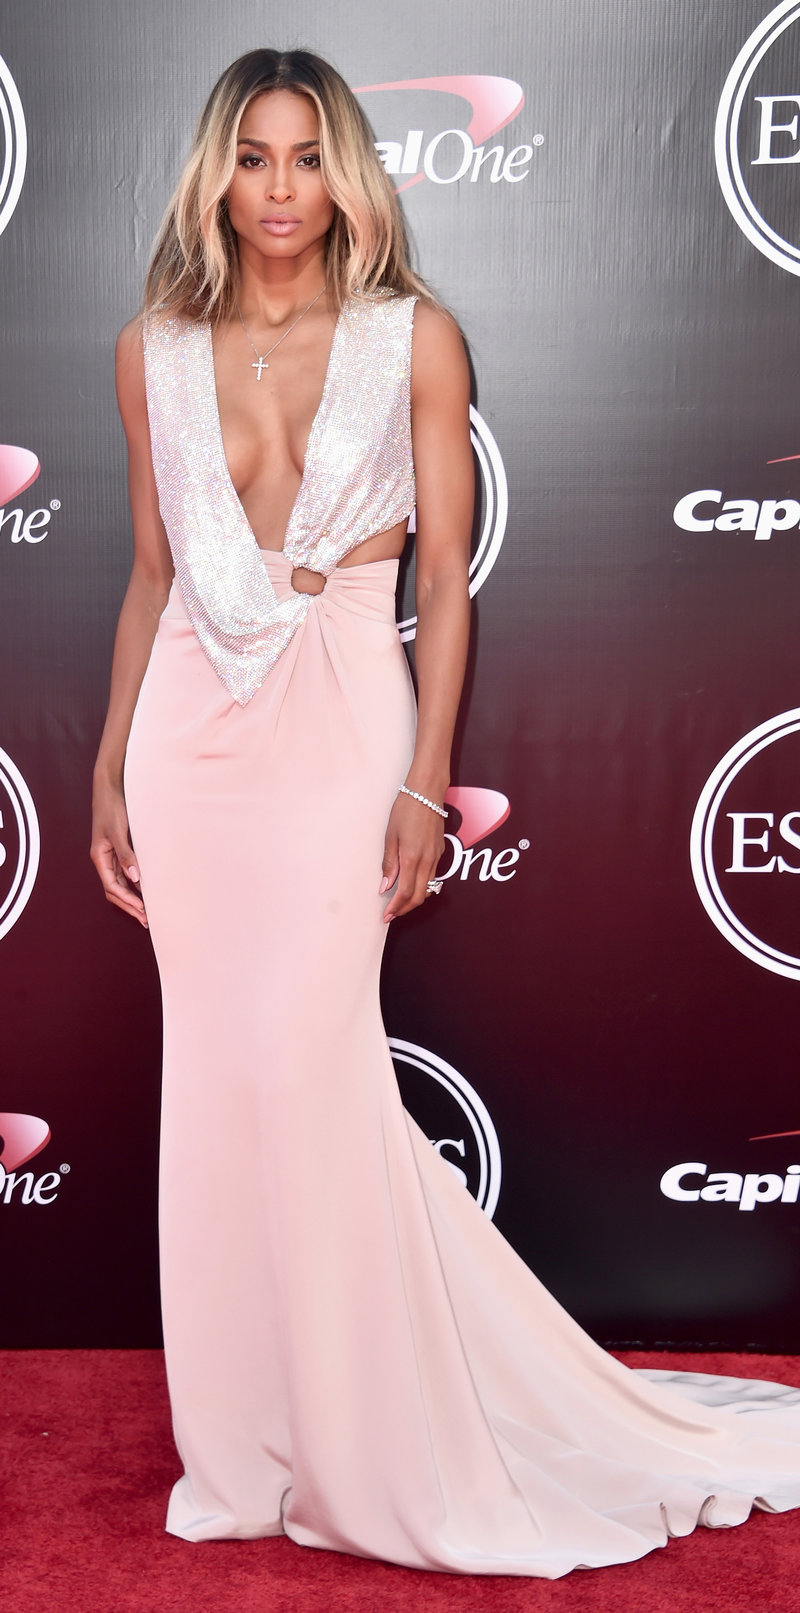 LOS ANGELES, CA - JULY 13: Recording artist Ciara attends the 2016 ESPYS at Microsoft Theater on July 13, 2016 in Los Angeles, California. (Photo by Alberto E. Rodriguez/Getty Images)